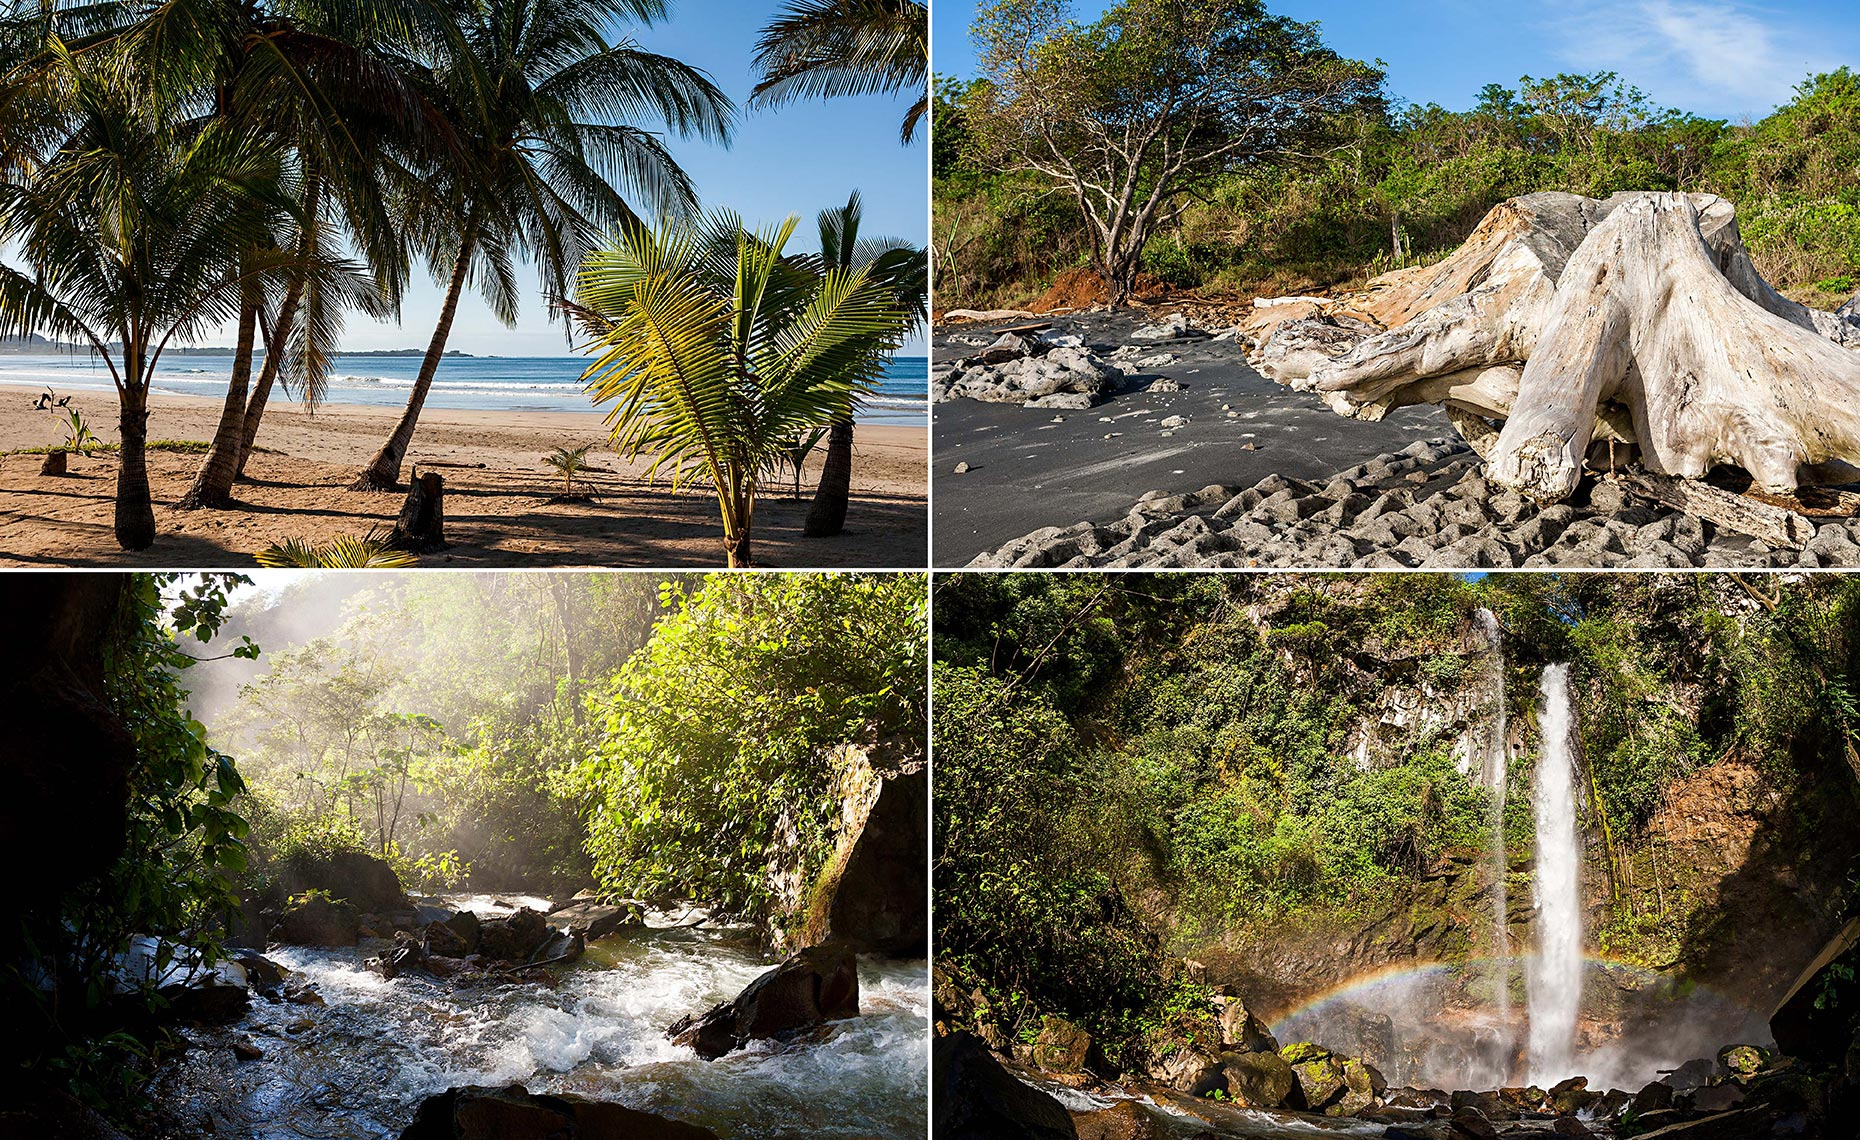 61_Playa_Grande_Costa_Rica_Environment_Landscape_Chris_Wellhausen_Photography.JPG